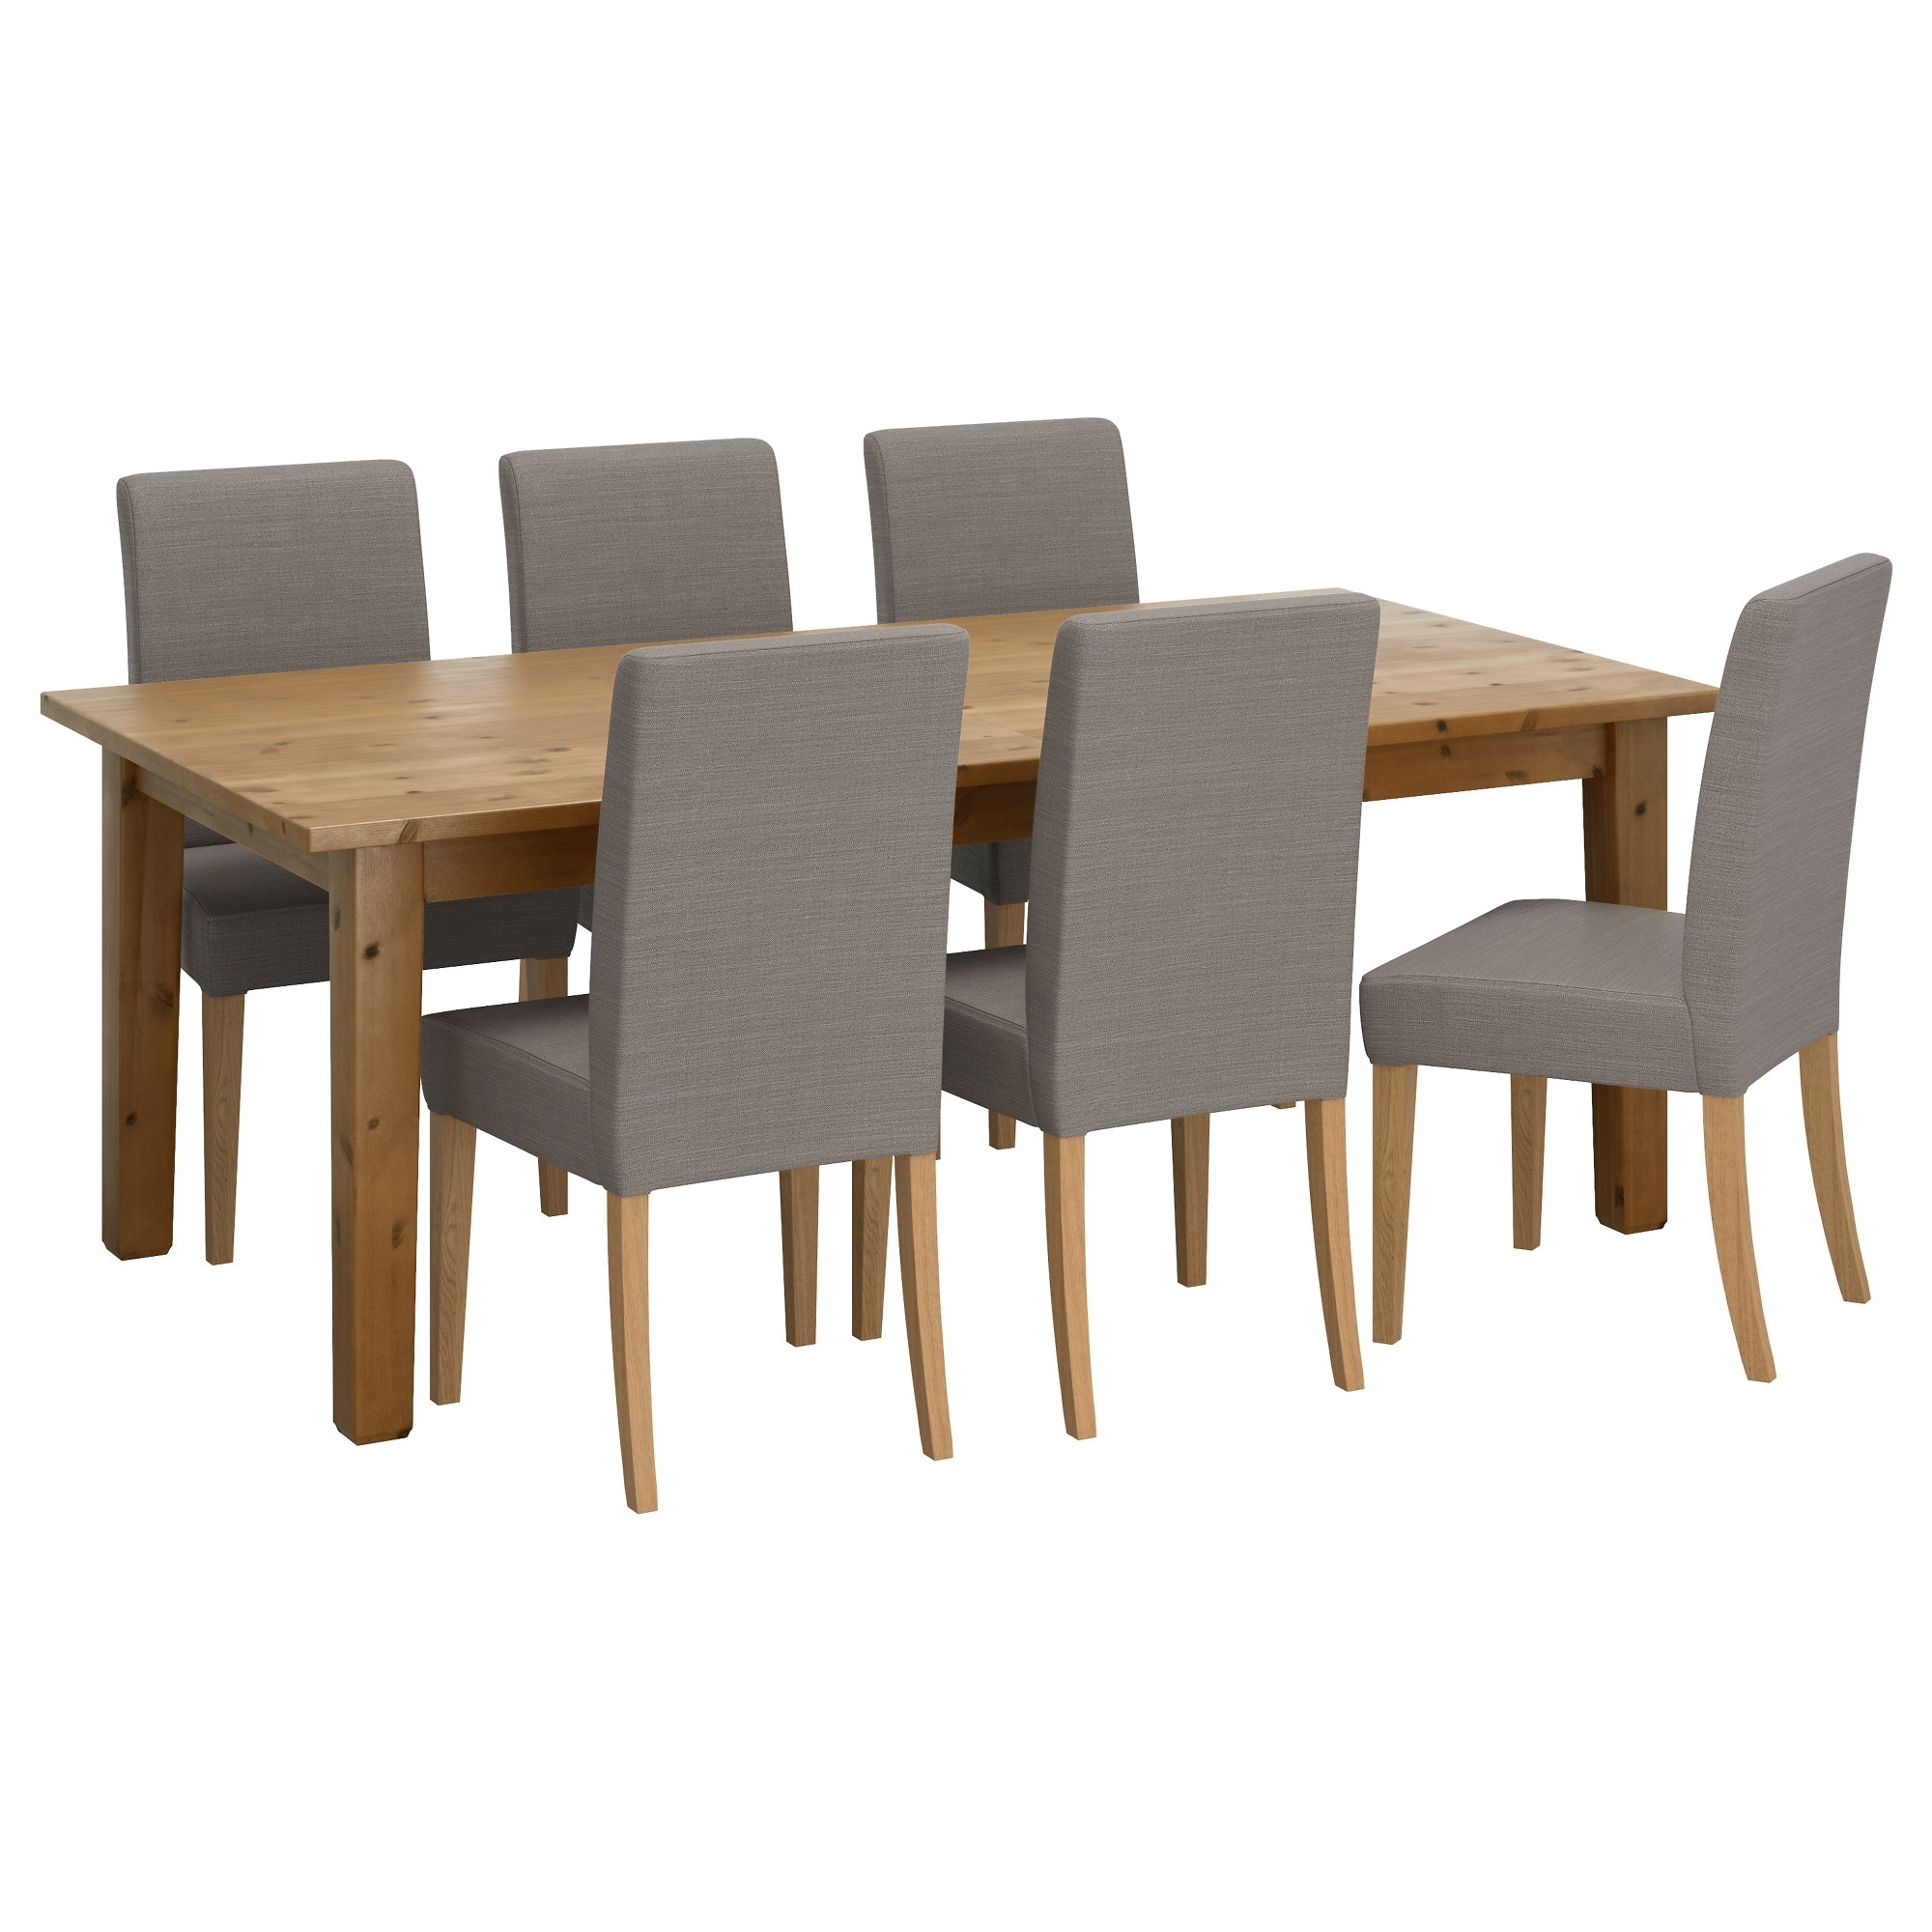 2017 6 Chairs Dining Tables Within 6 Seater Dining Table & Chairs (View 1 of 25)